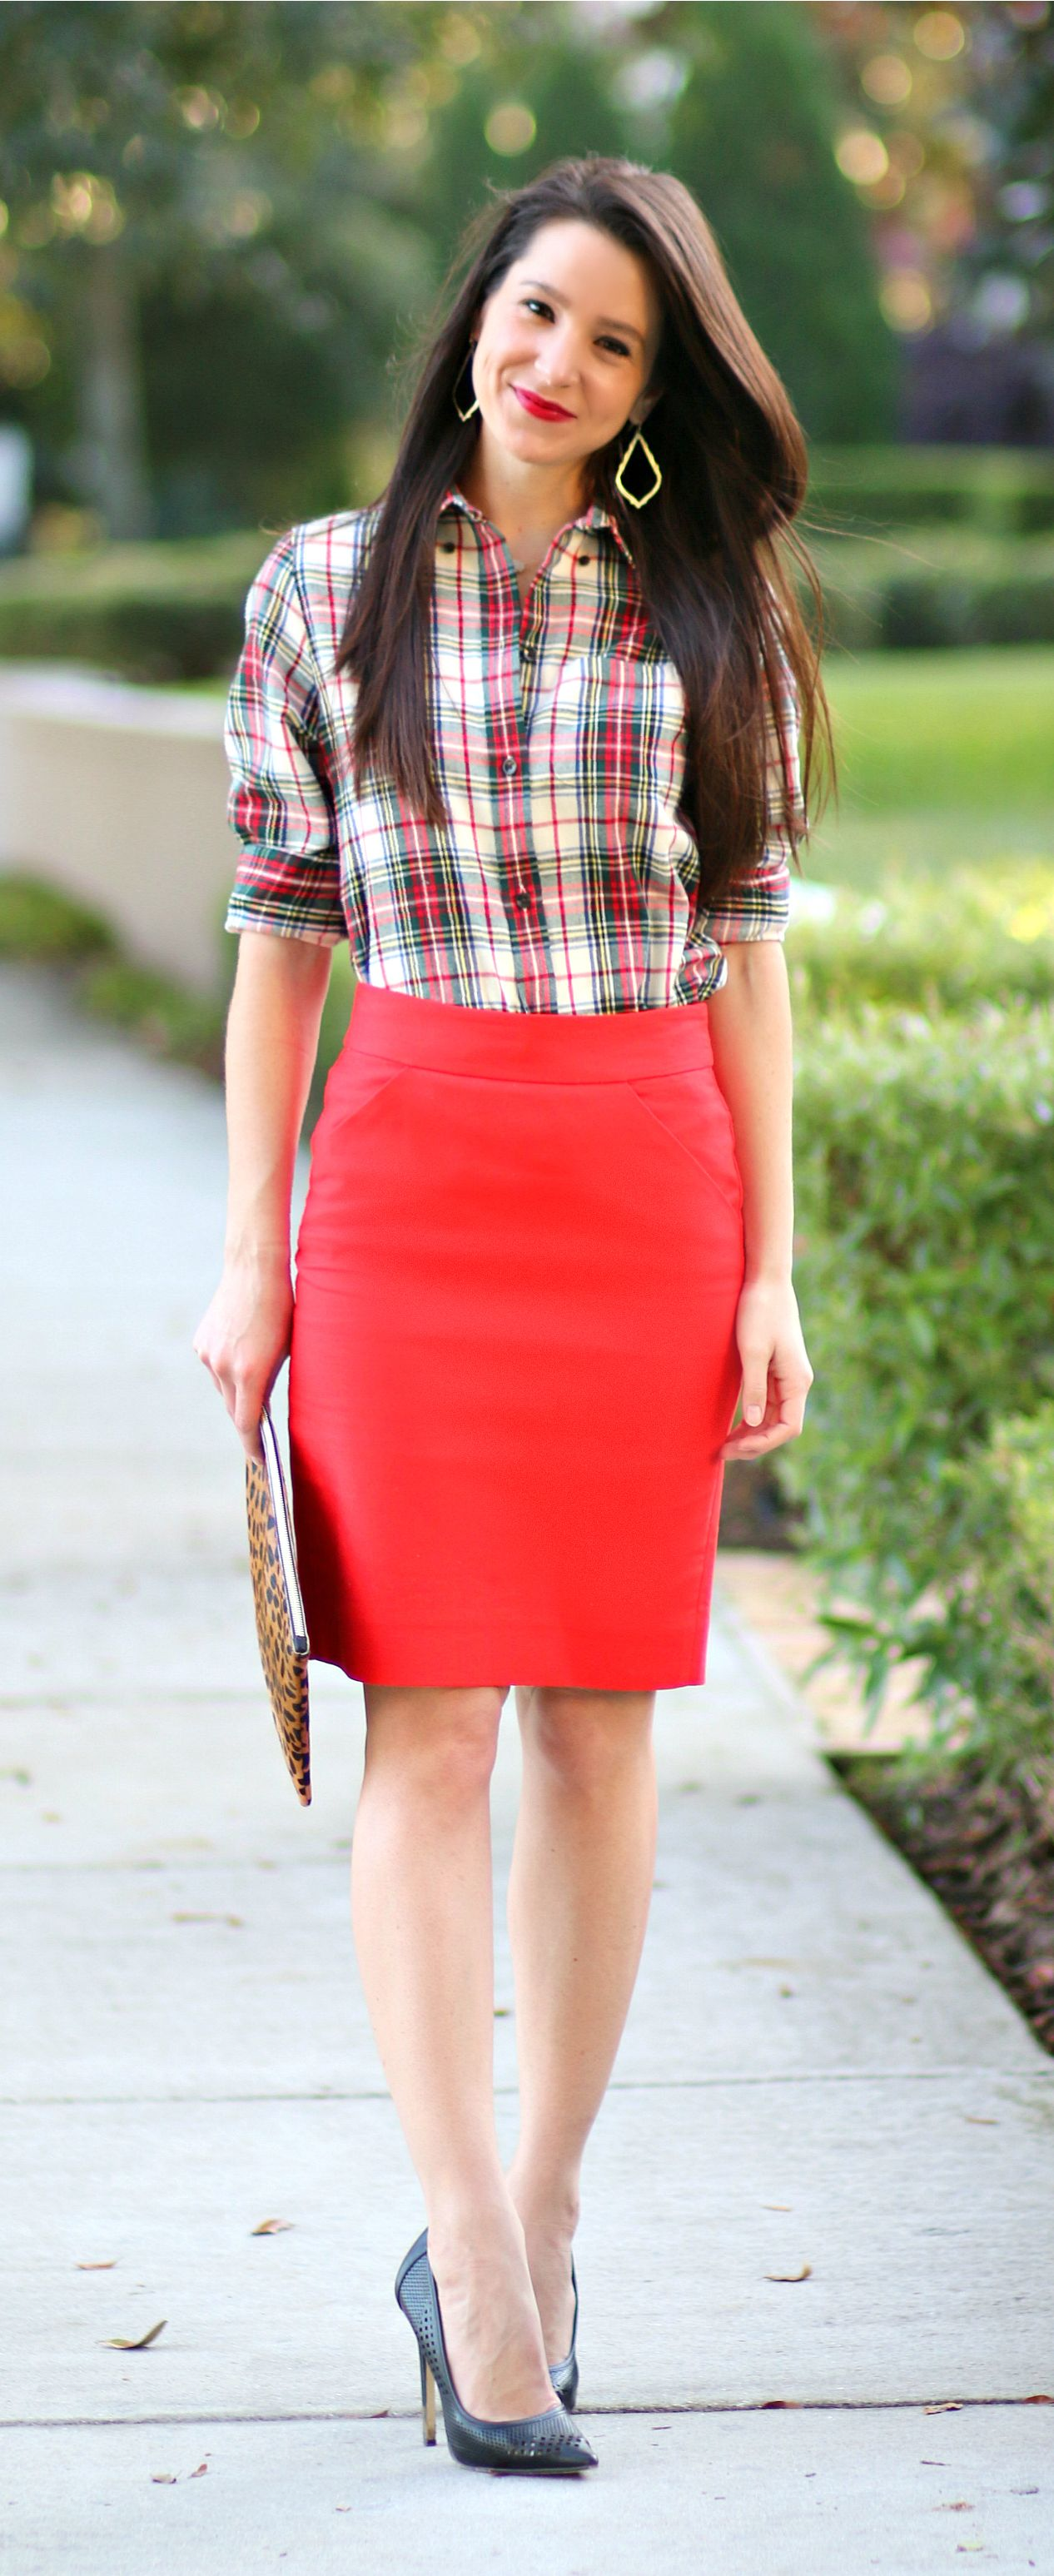 6b2f9afd32 How to wear a red pencil skirt to work in December! Love this festive  holiday